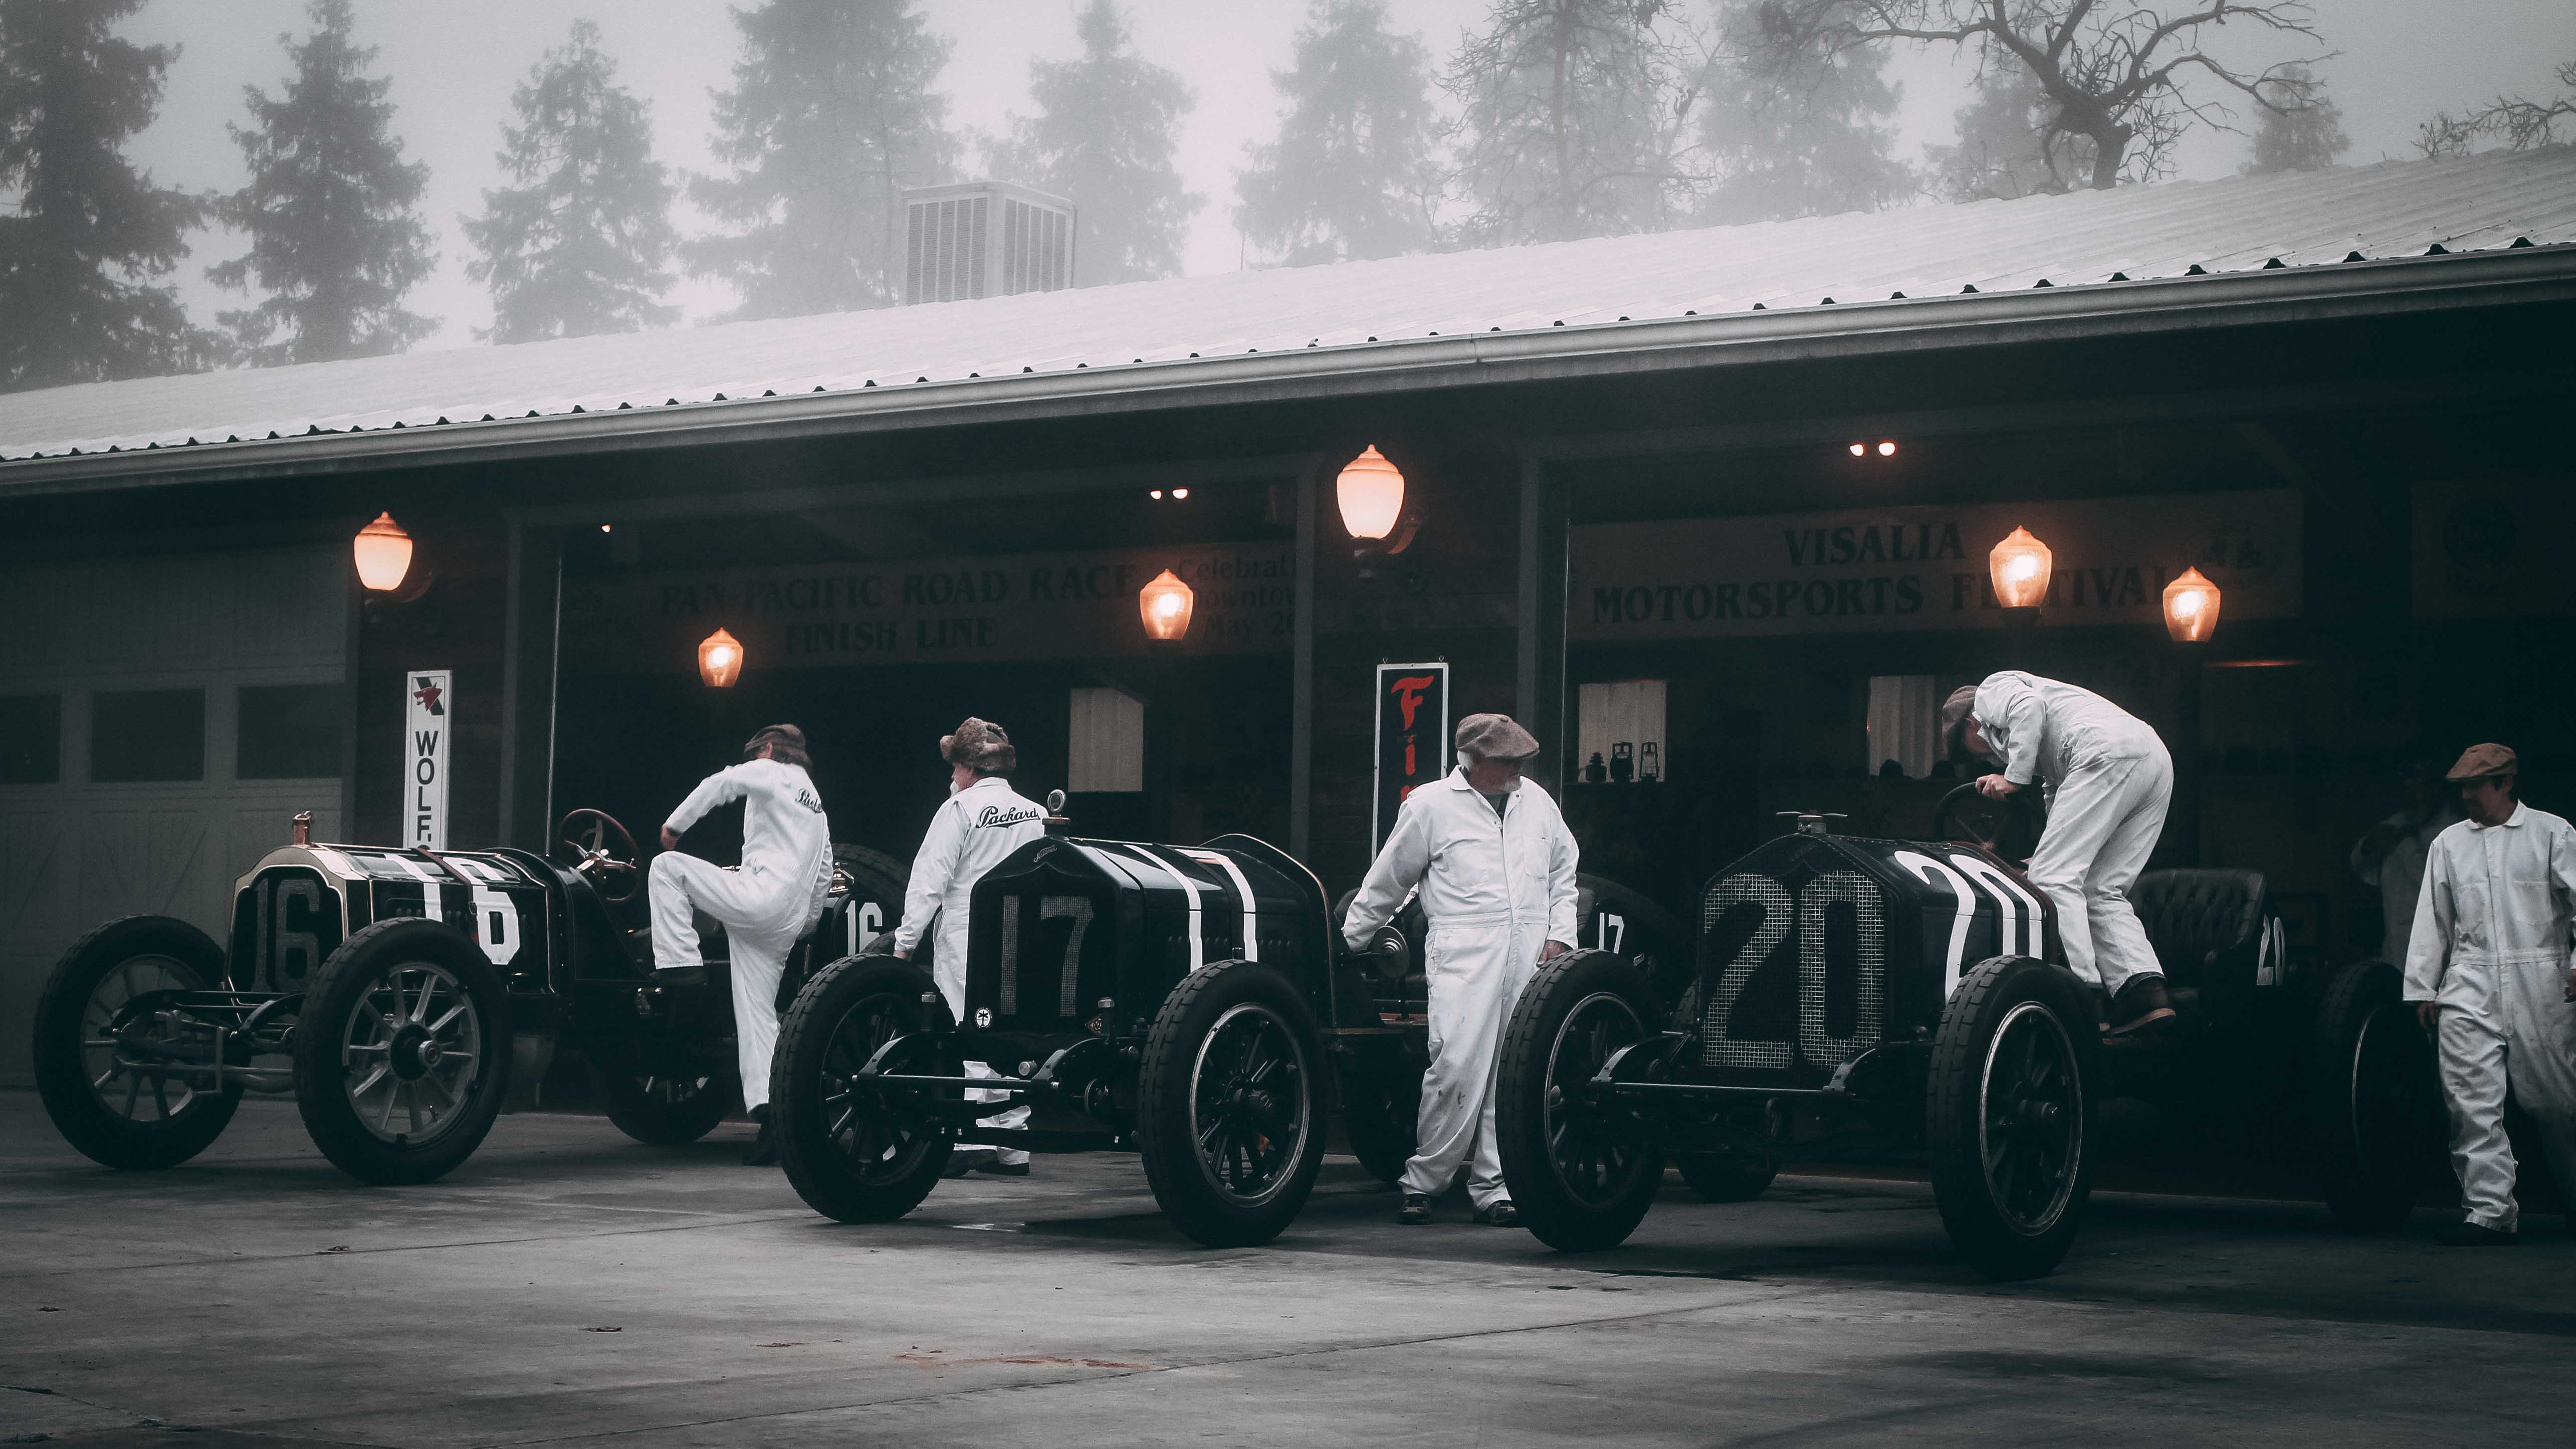 group of classic race cars